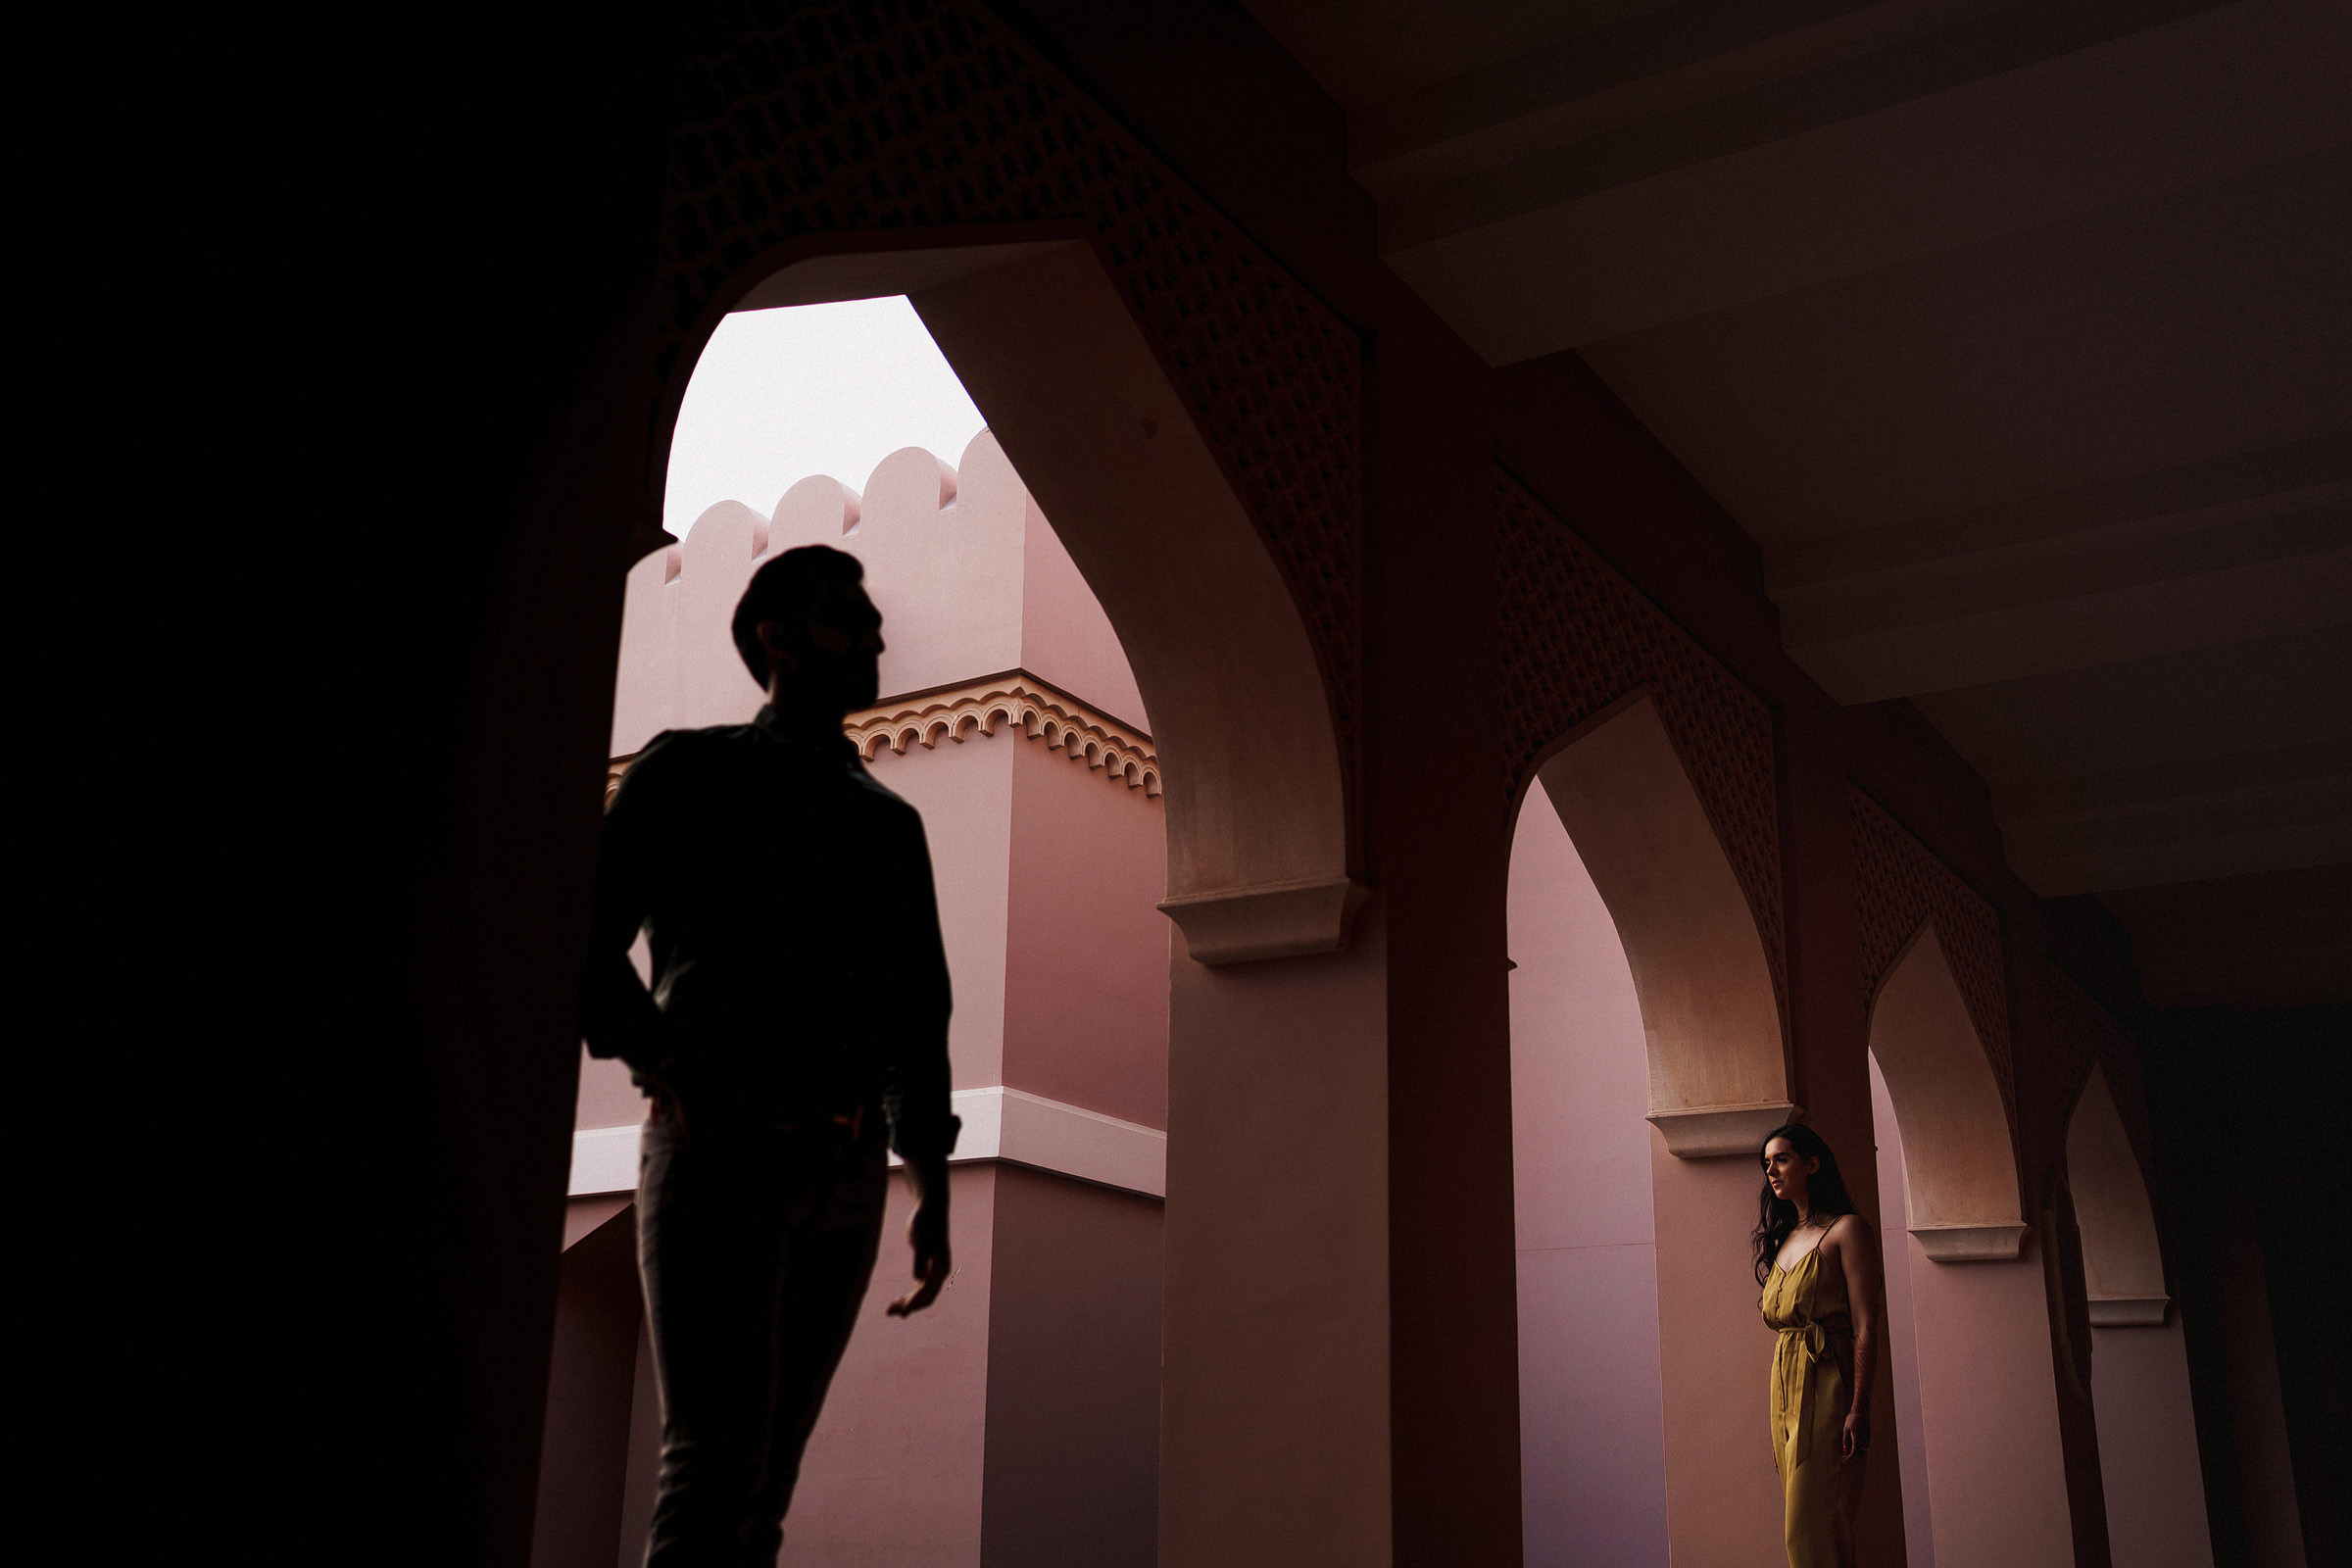 Groom silhouette with bride amid pink archways - photo by f5 Photography